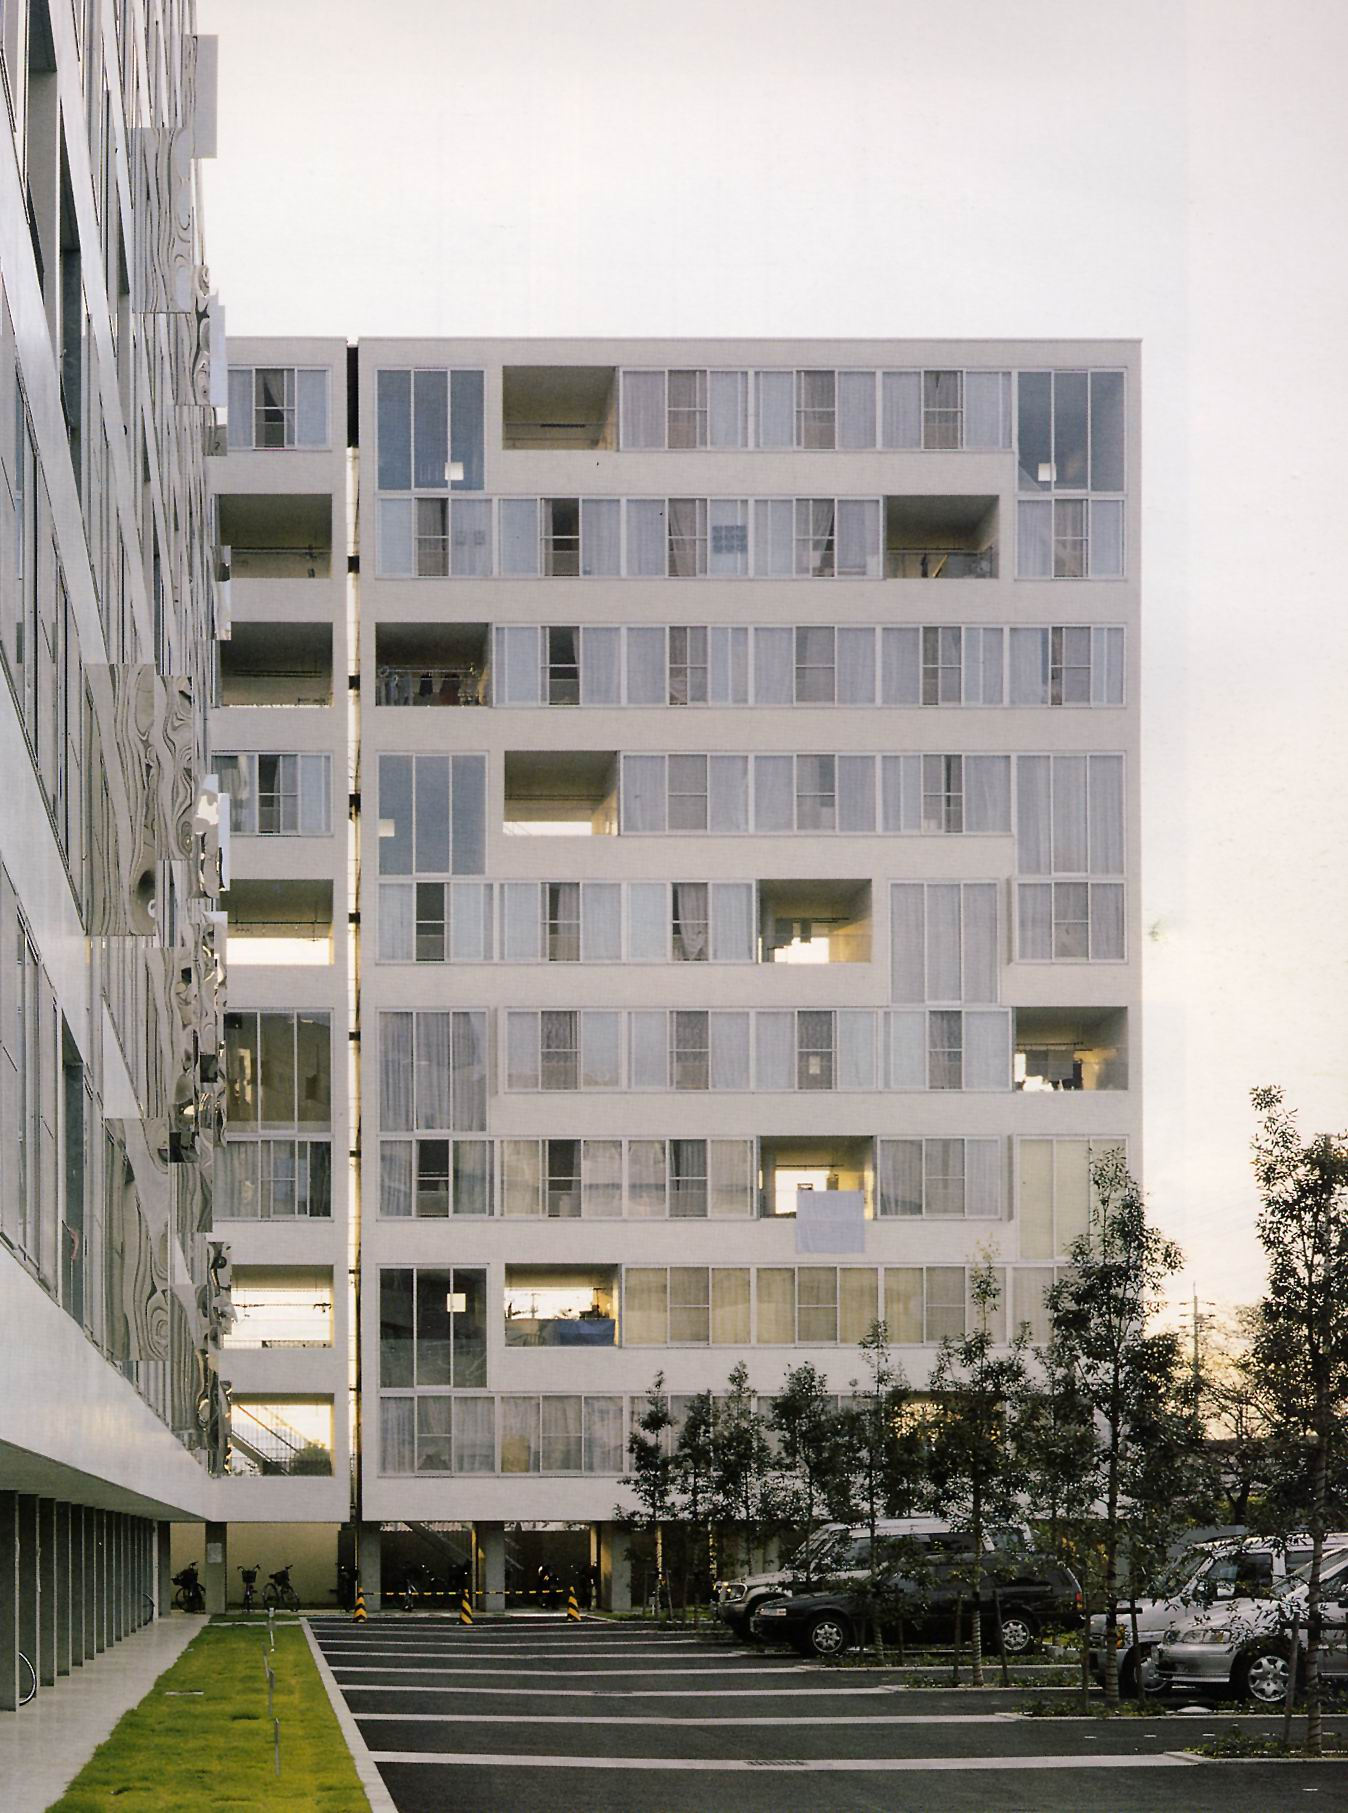 The Terraces Create Holes In Building Through Which Far Side Of Can Be Glimpsed Thus Reducing Visual Impression Massiveness